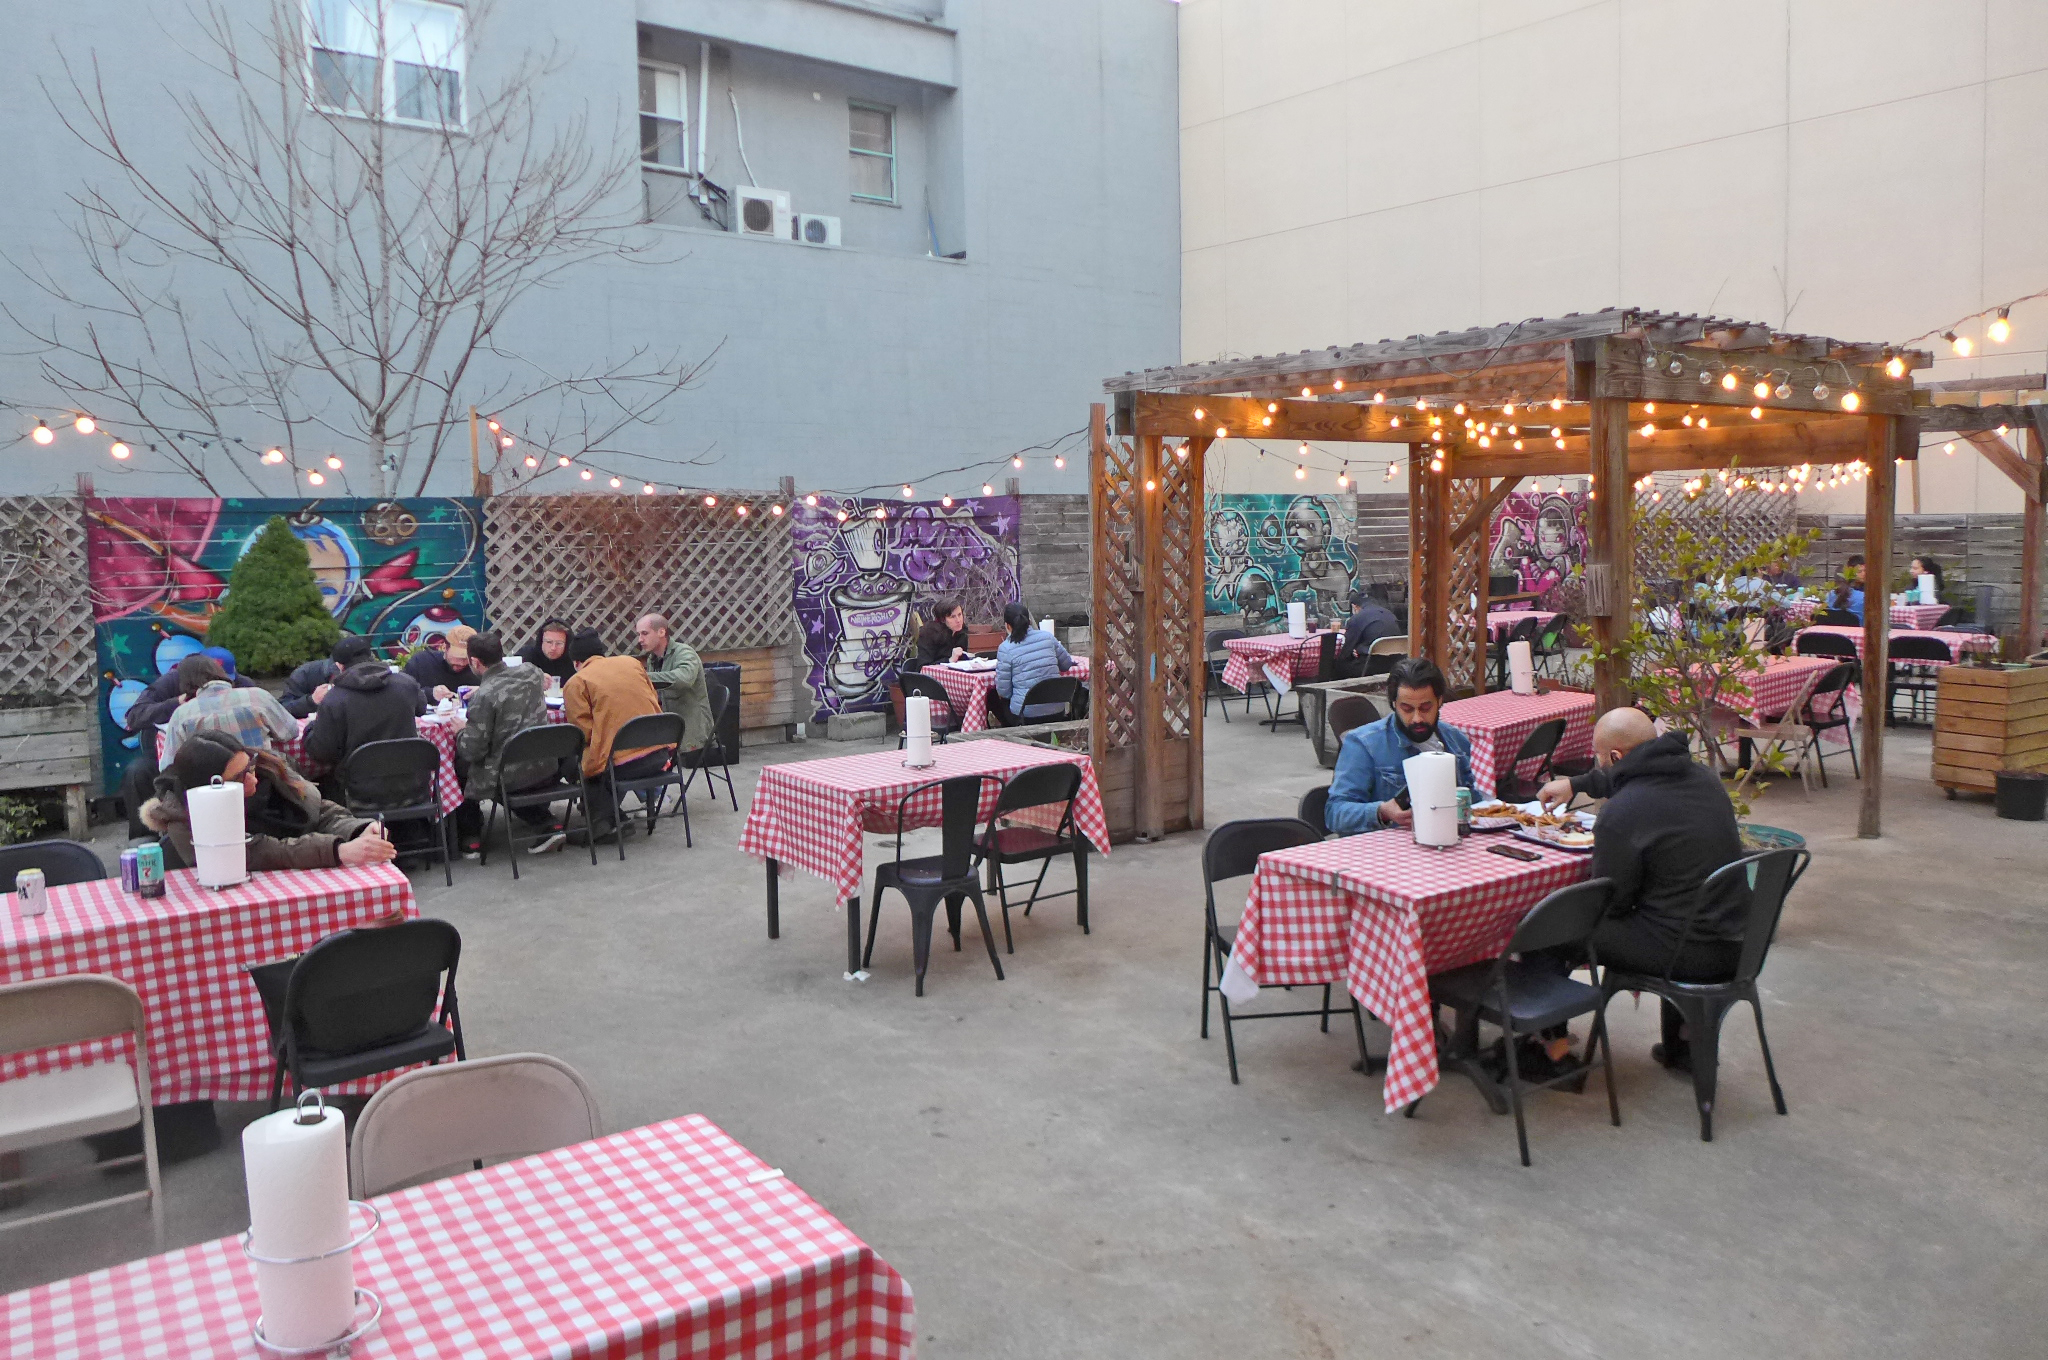 A courtyard with nicely spaced tables, half occupied, with red-checked tablecloths and strings of lights overhead.